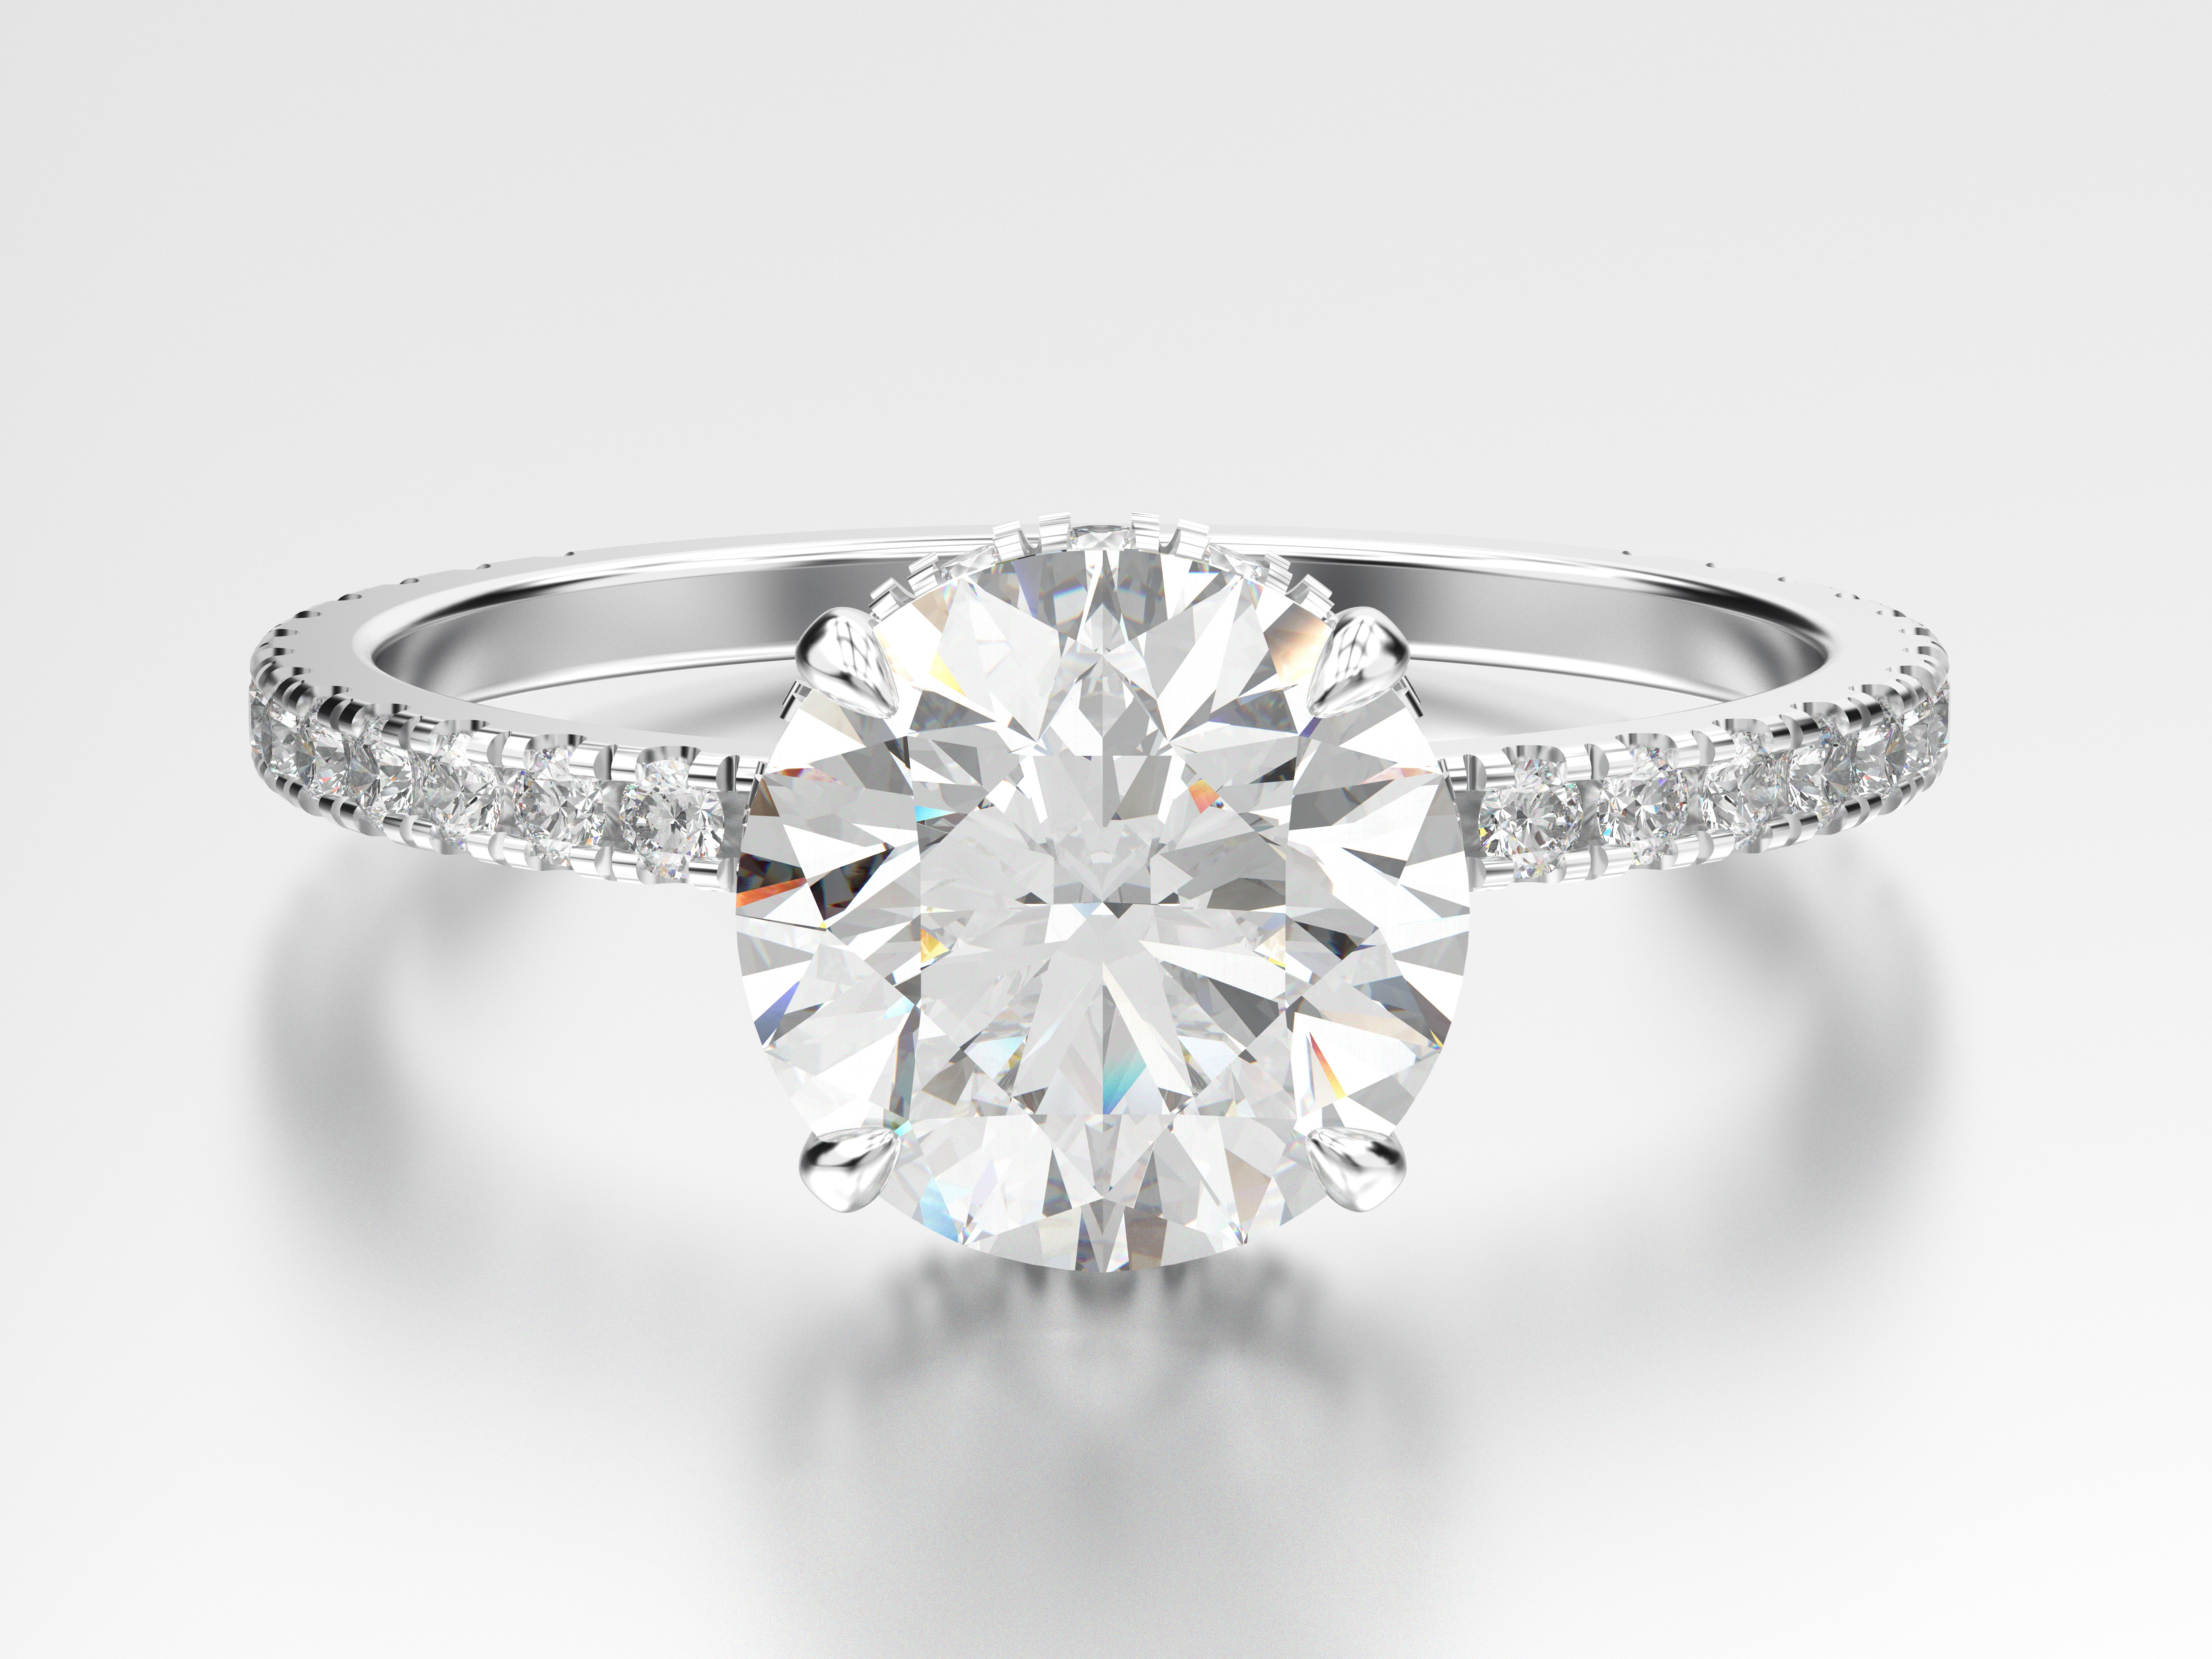 A fresh look at finding the perfect Diamond and Engagement Ring